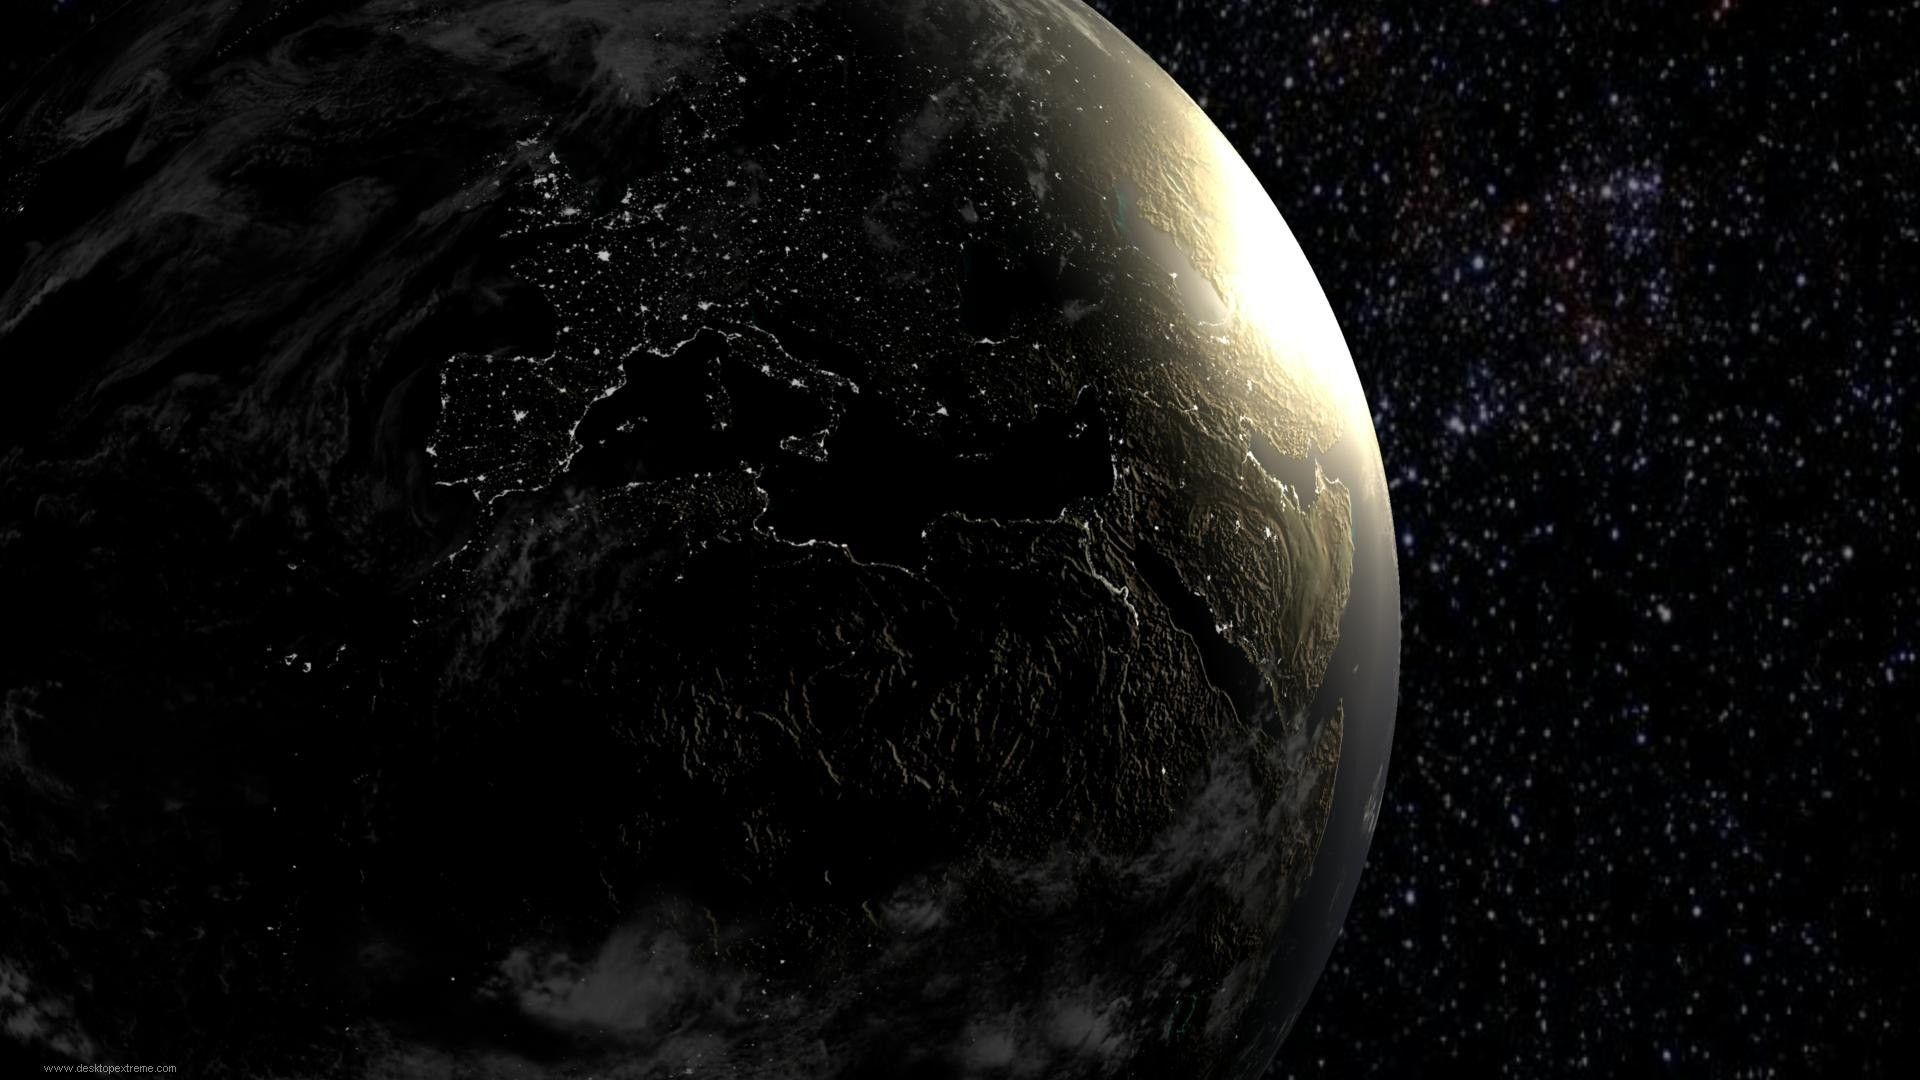 Earth Lights Wallpapers - Top Free Earth Lights ...